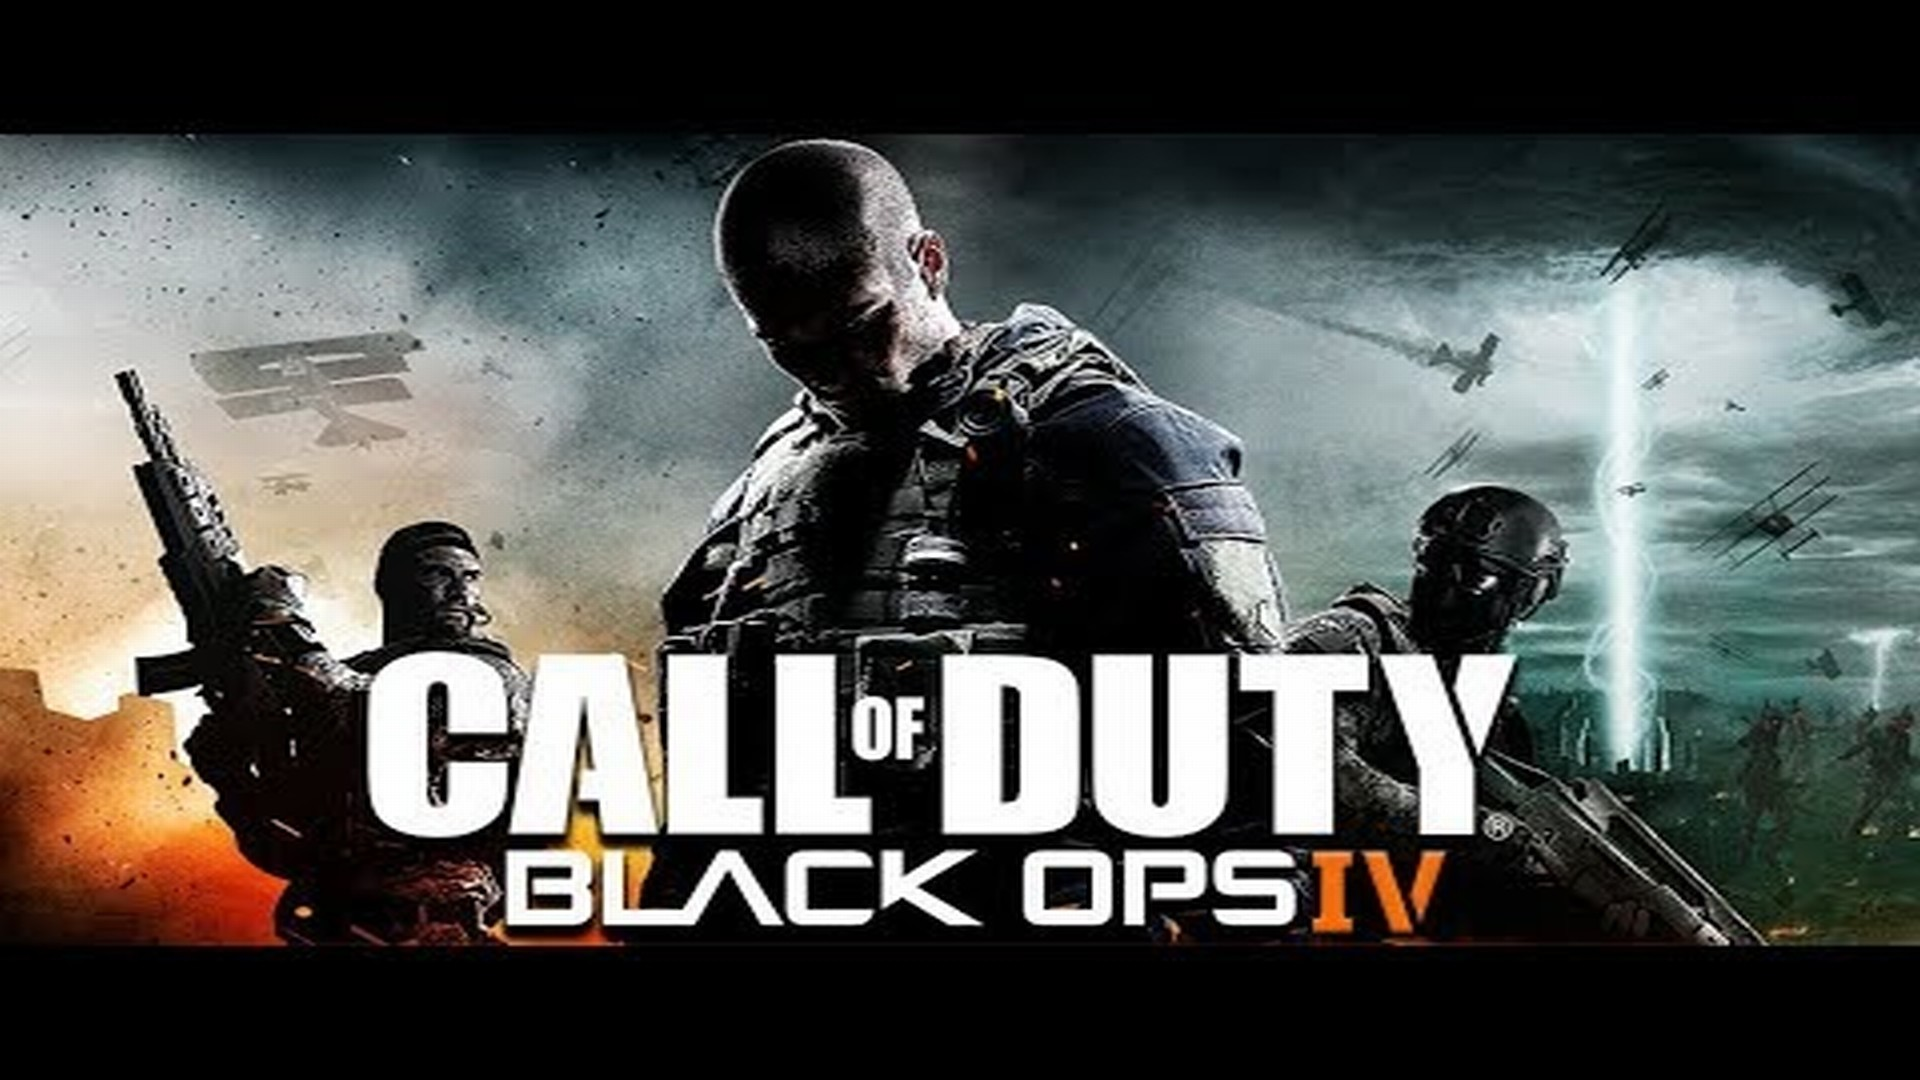 Black Ops Hd Wallpaper 80 Pictures